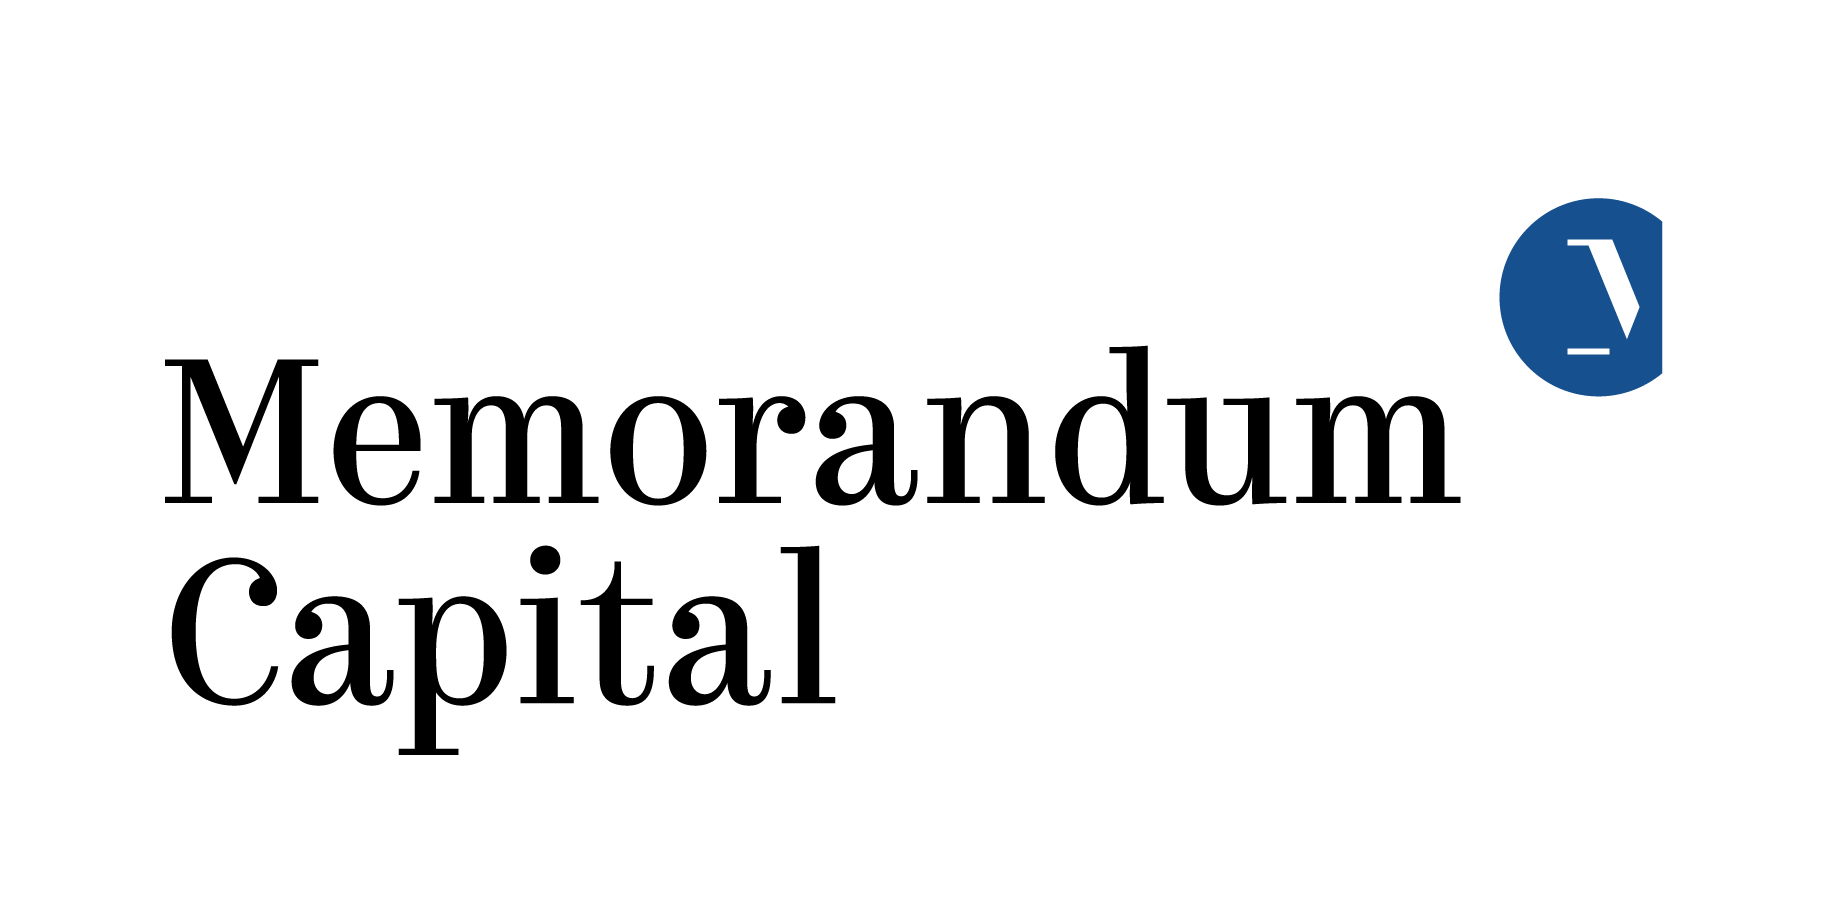 Memorandum Capital LTD